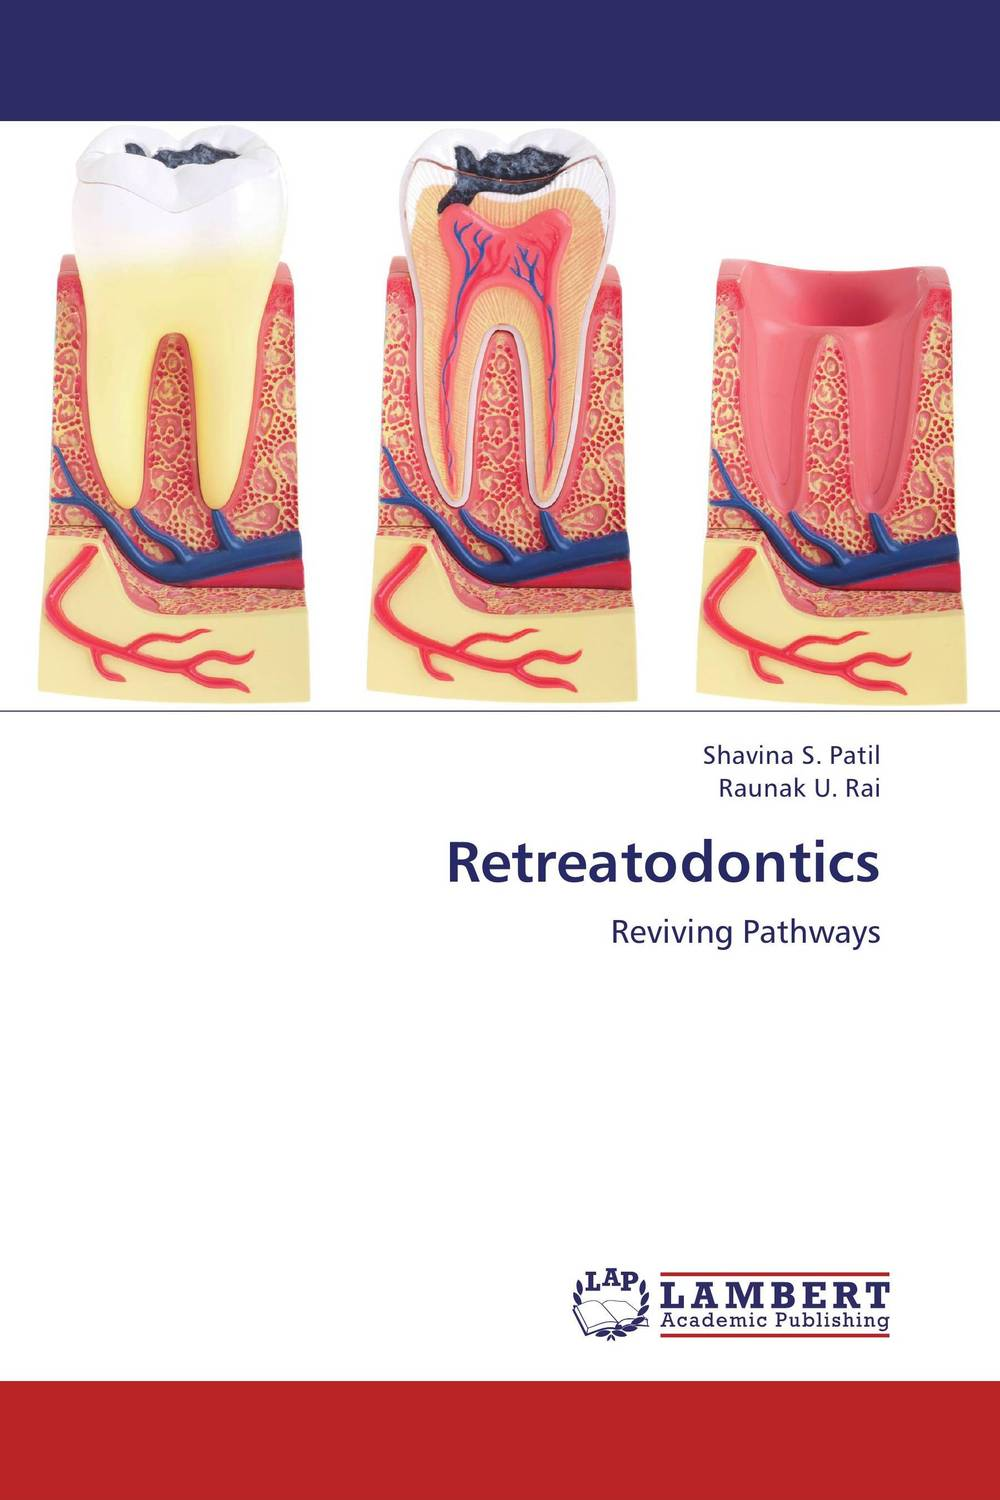 Retreatodontics 2017 new 2 boxes dental original woodpecker niti endo endodontic u file optional 15  40 used for root canal cleaning